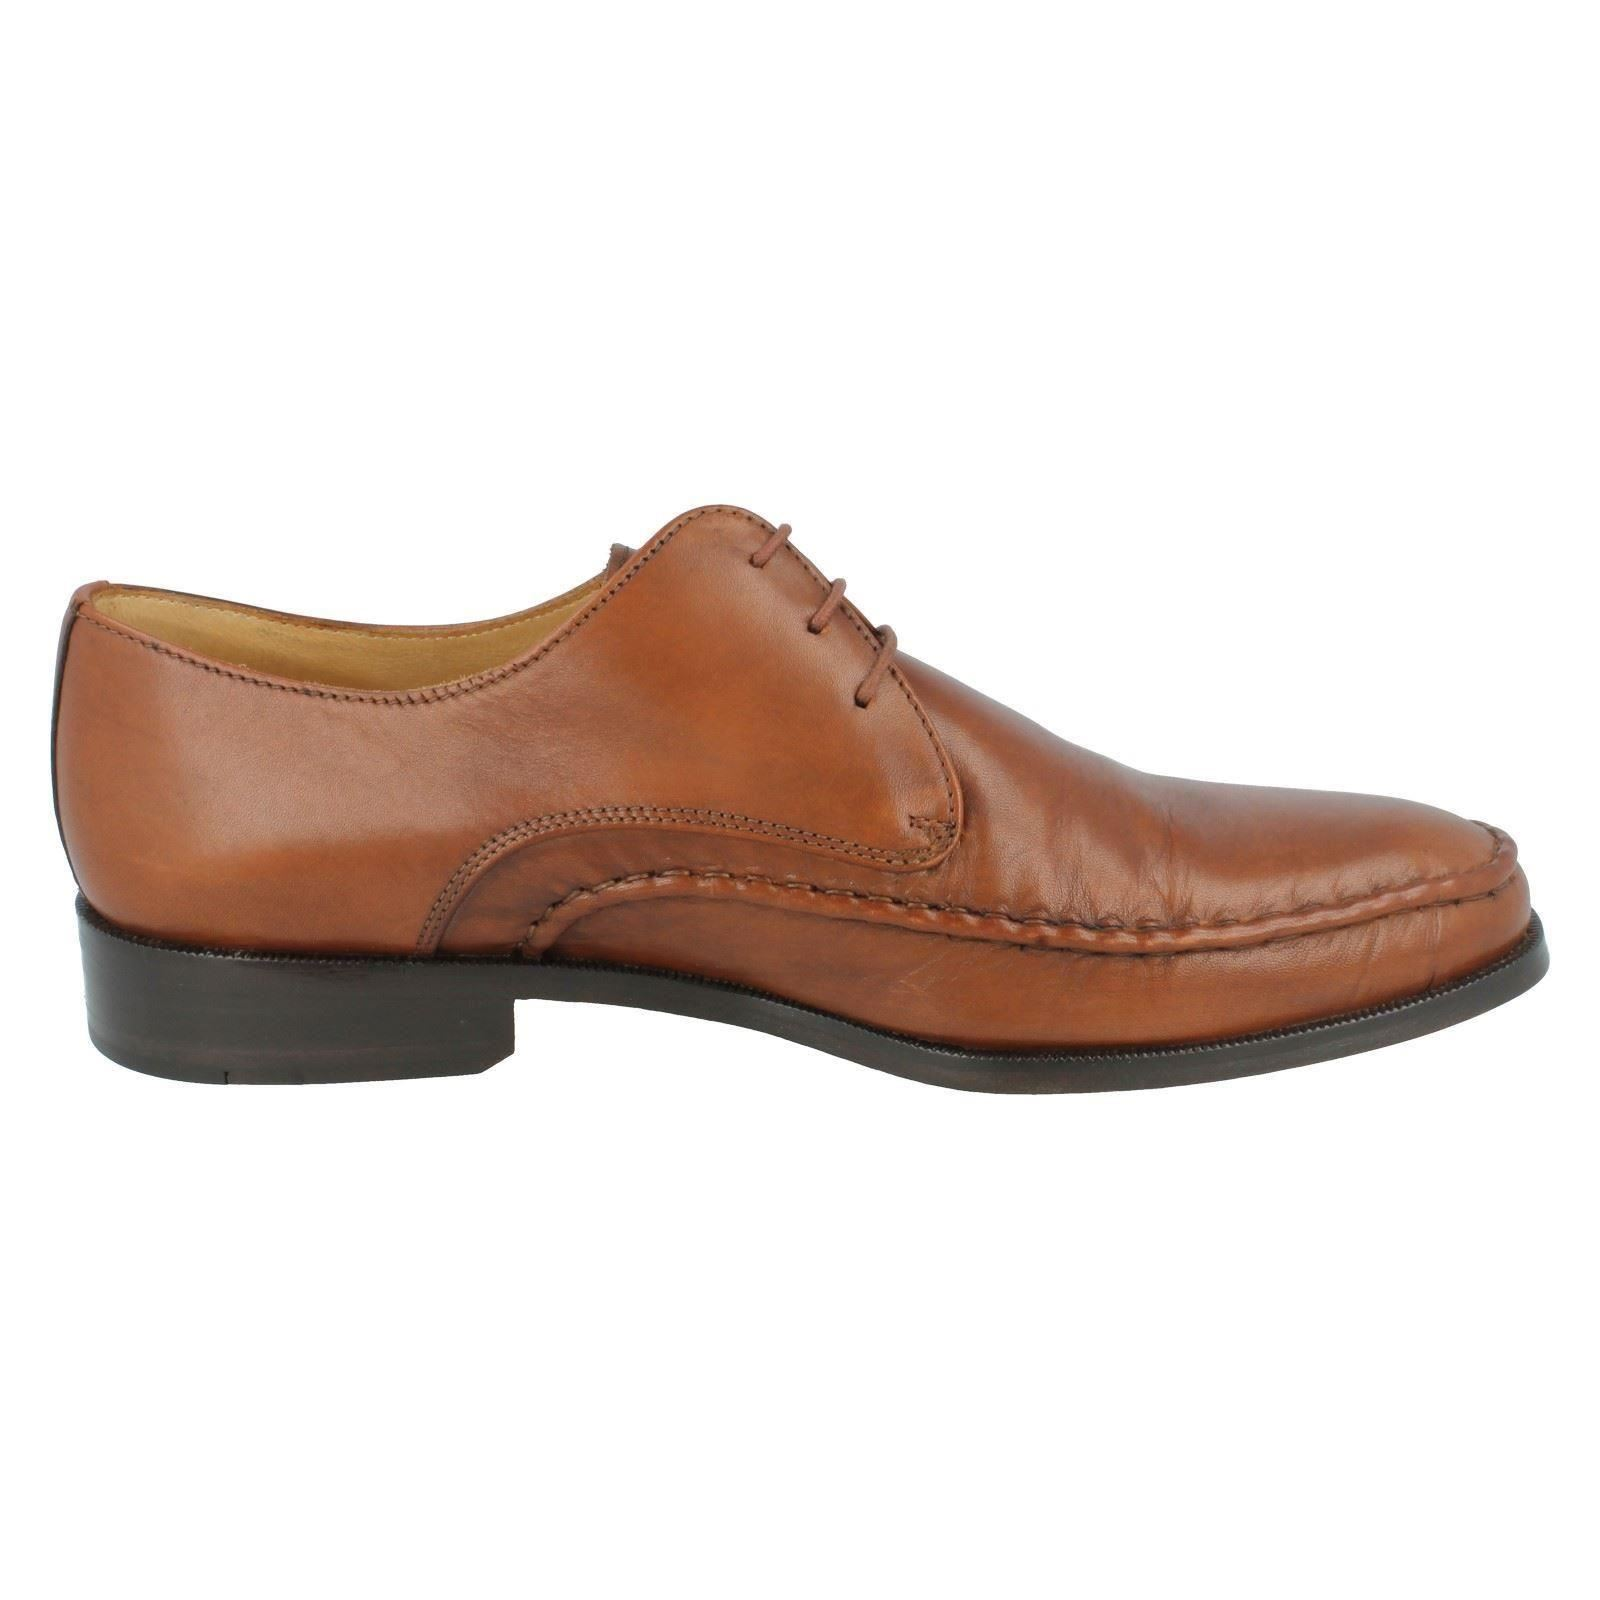 Mens Grenson Feathermaster Formal Shoes Label - Mazzola 5501